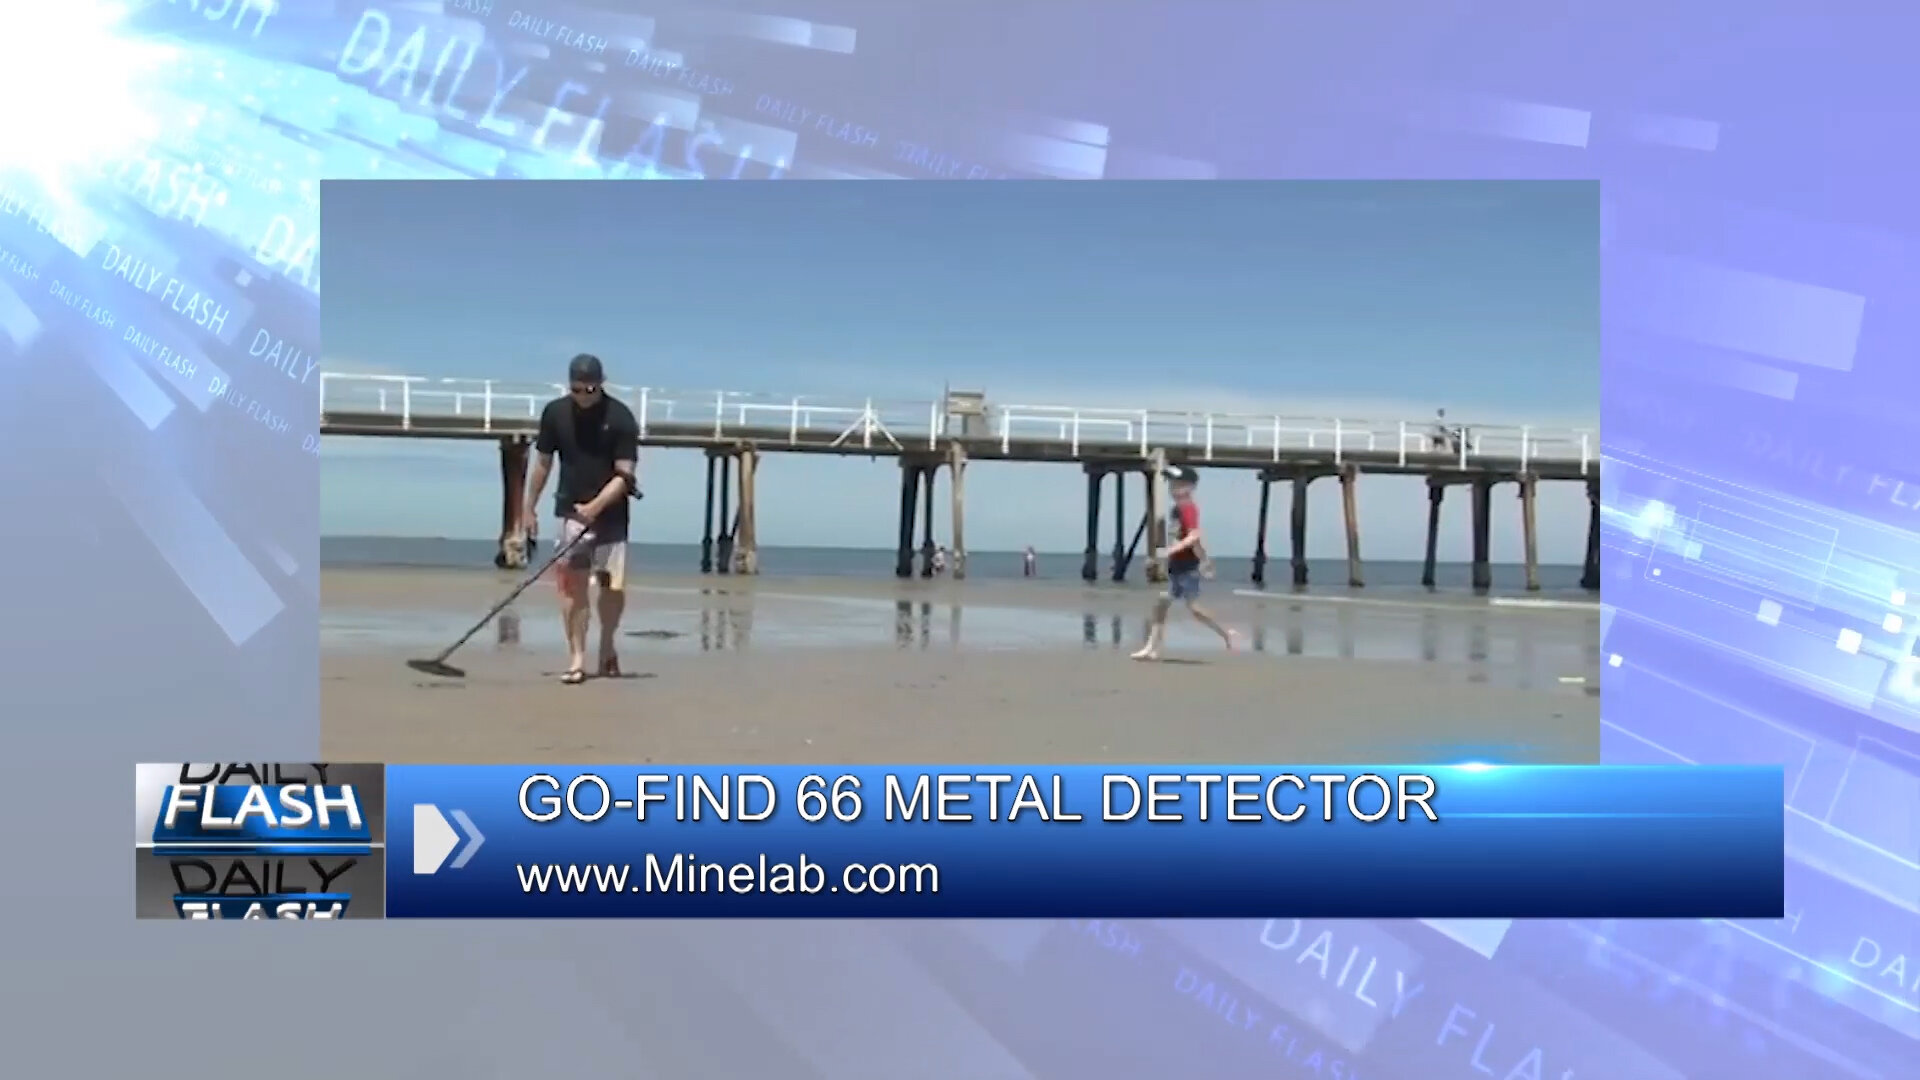 GO-FIND 66 METAL DETECTOR BY MINELAB - $249.00Shop Now